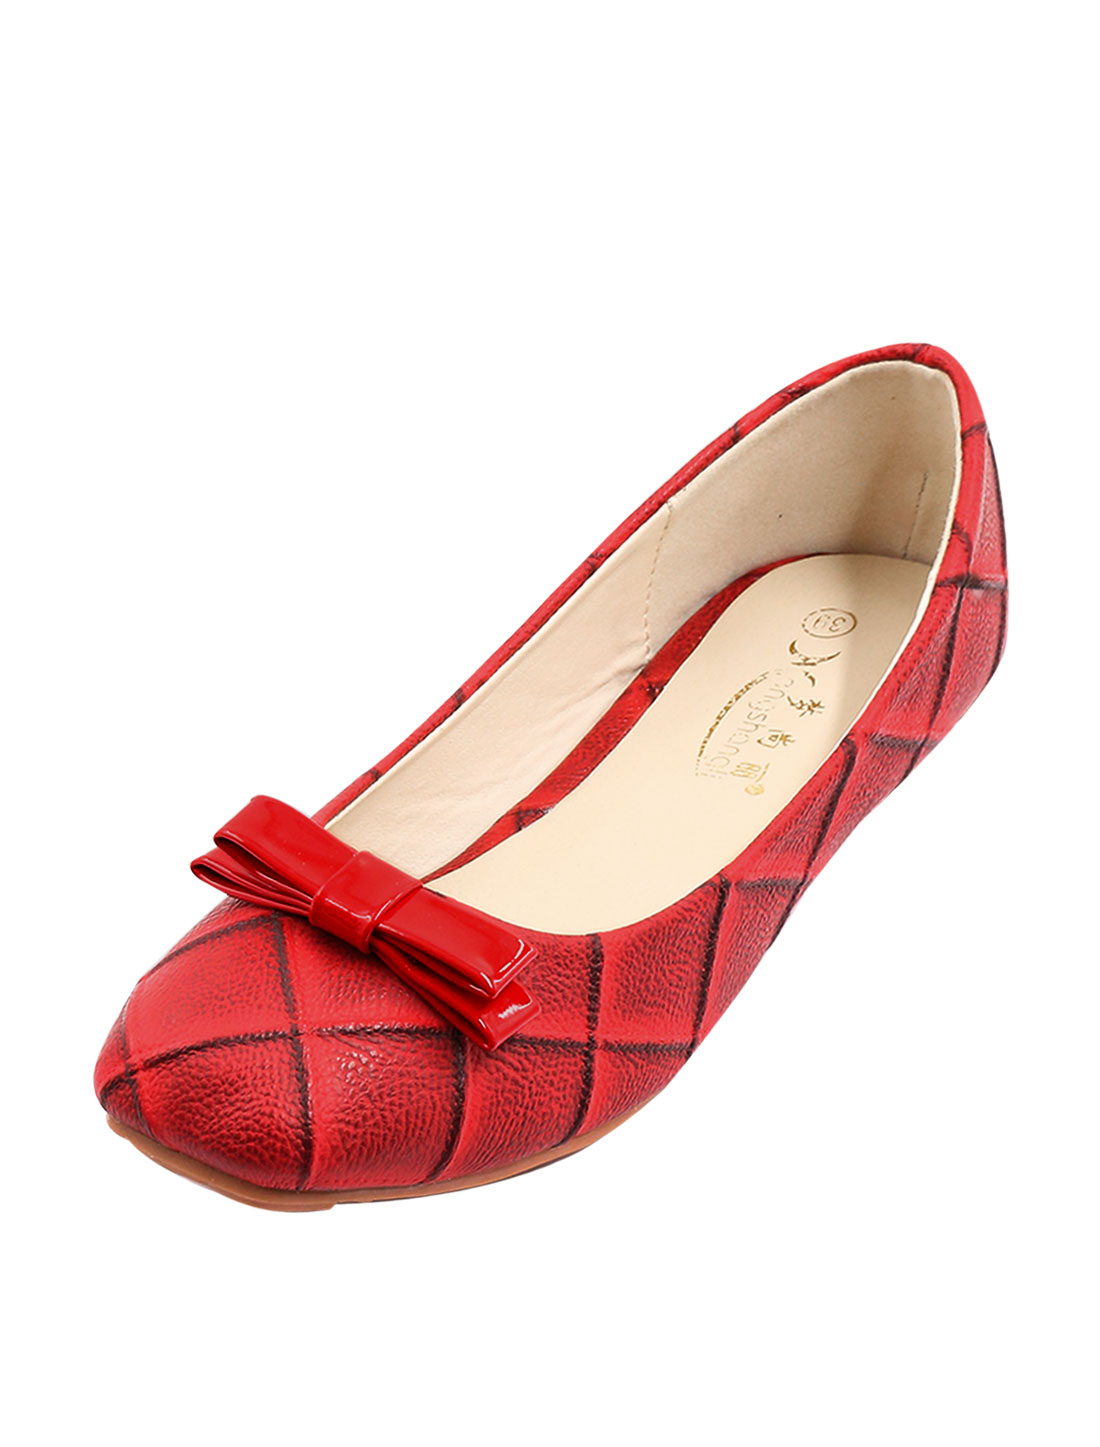 Women Square Toe Bowknot Embellished Argyle Pattern Casual Flat Shoes Red US 8